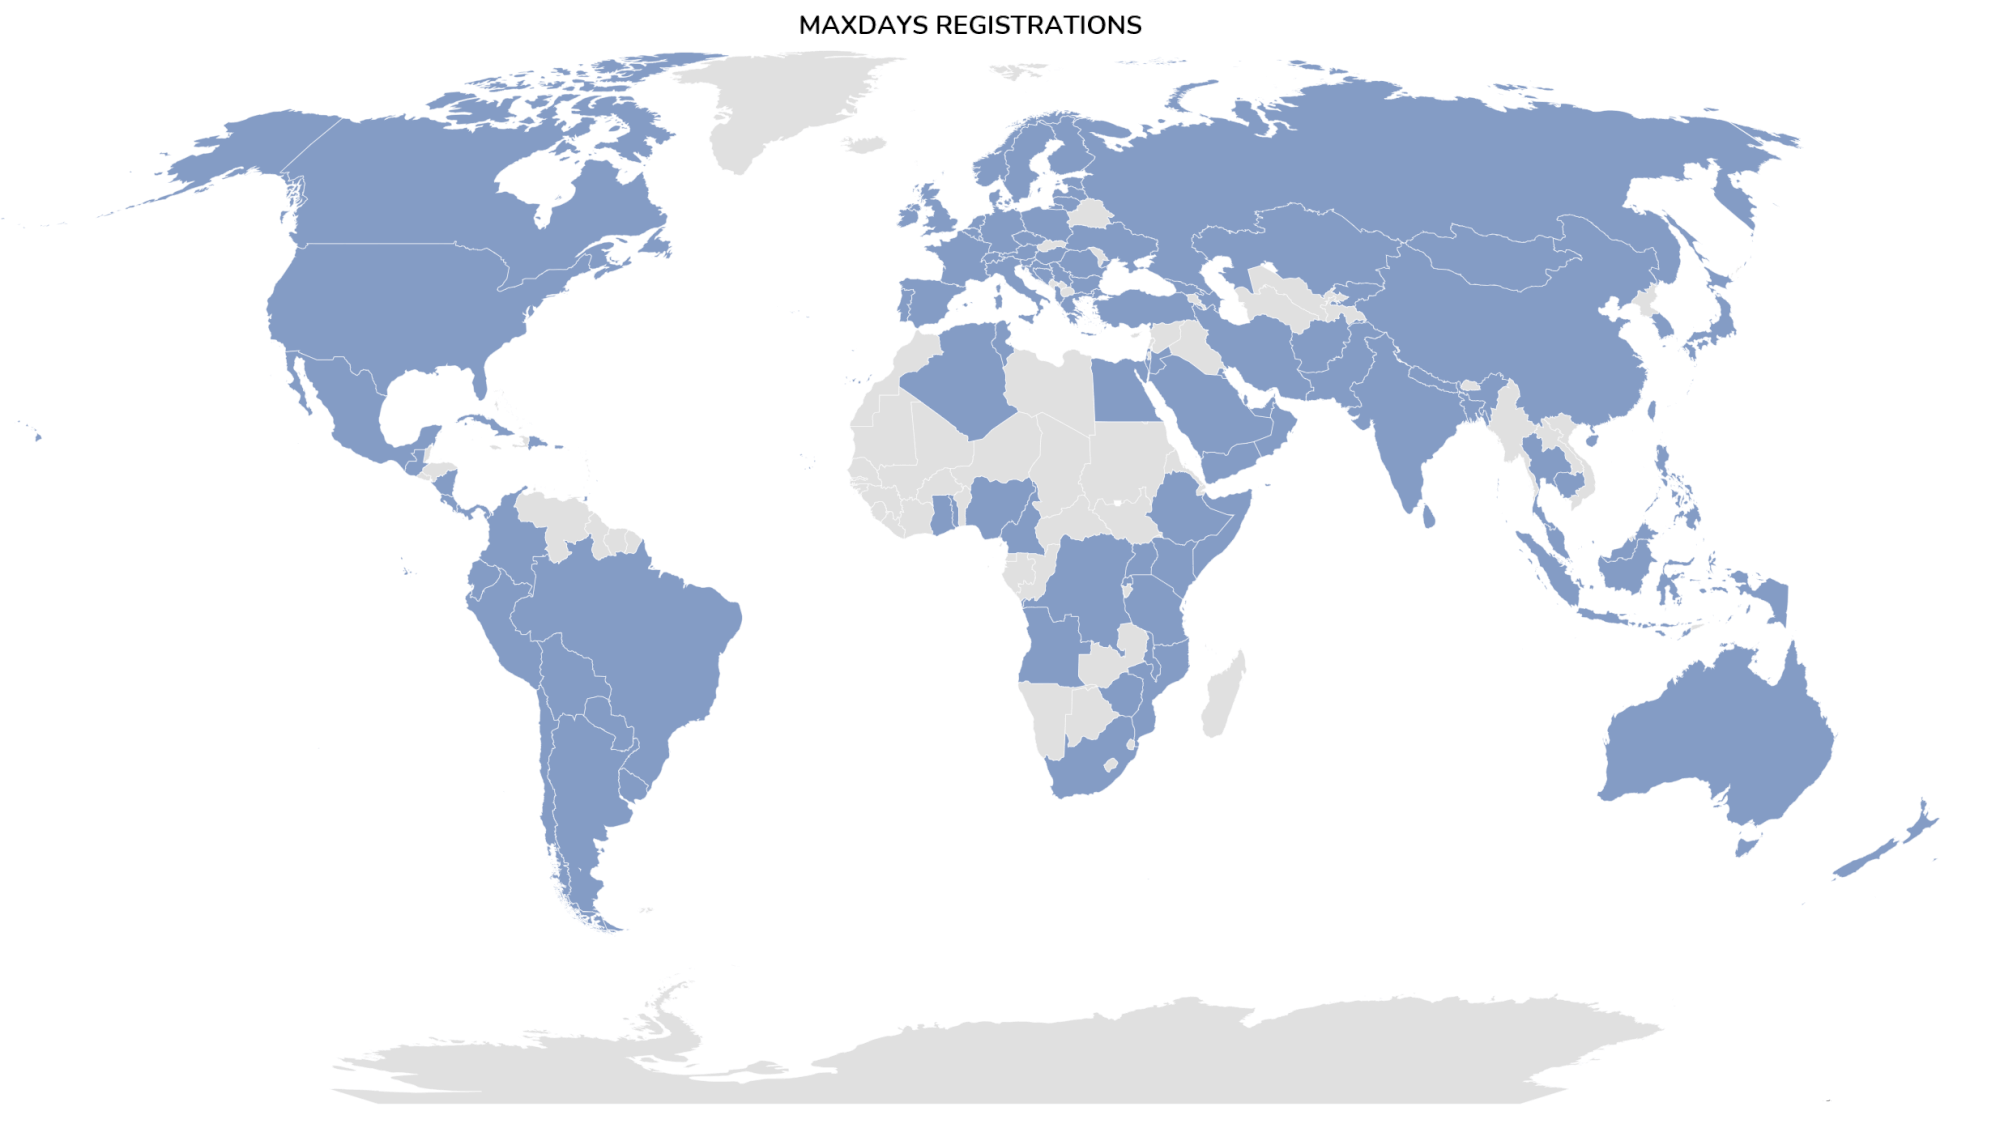 A map of worldwide registrations for MAXDAYS.